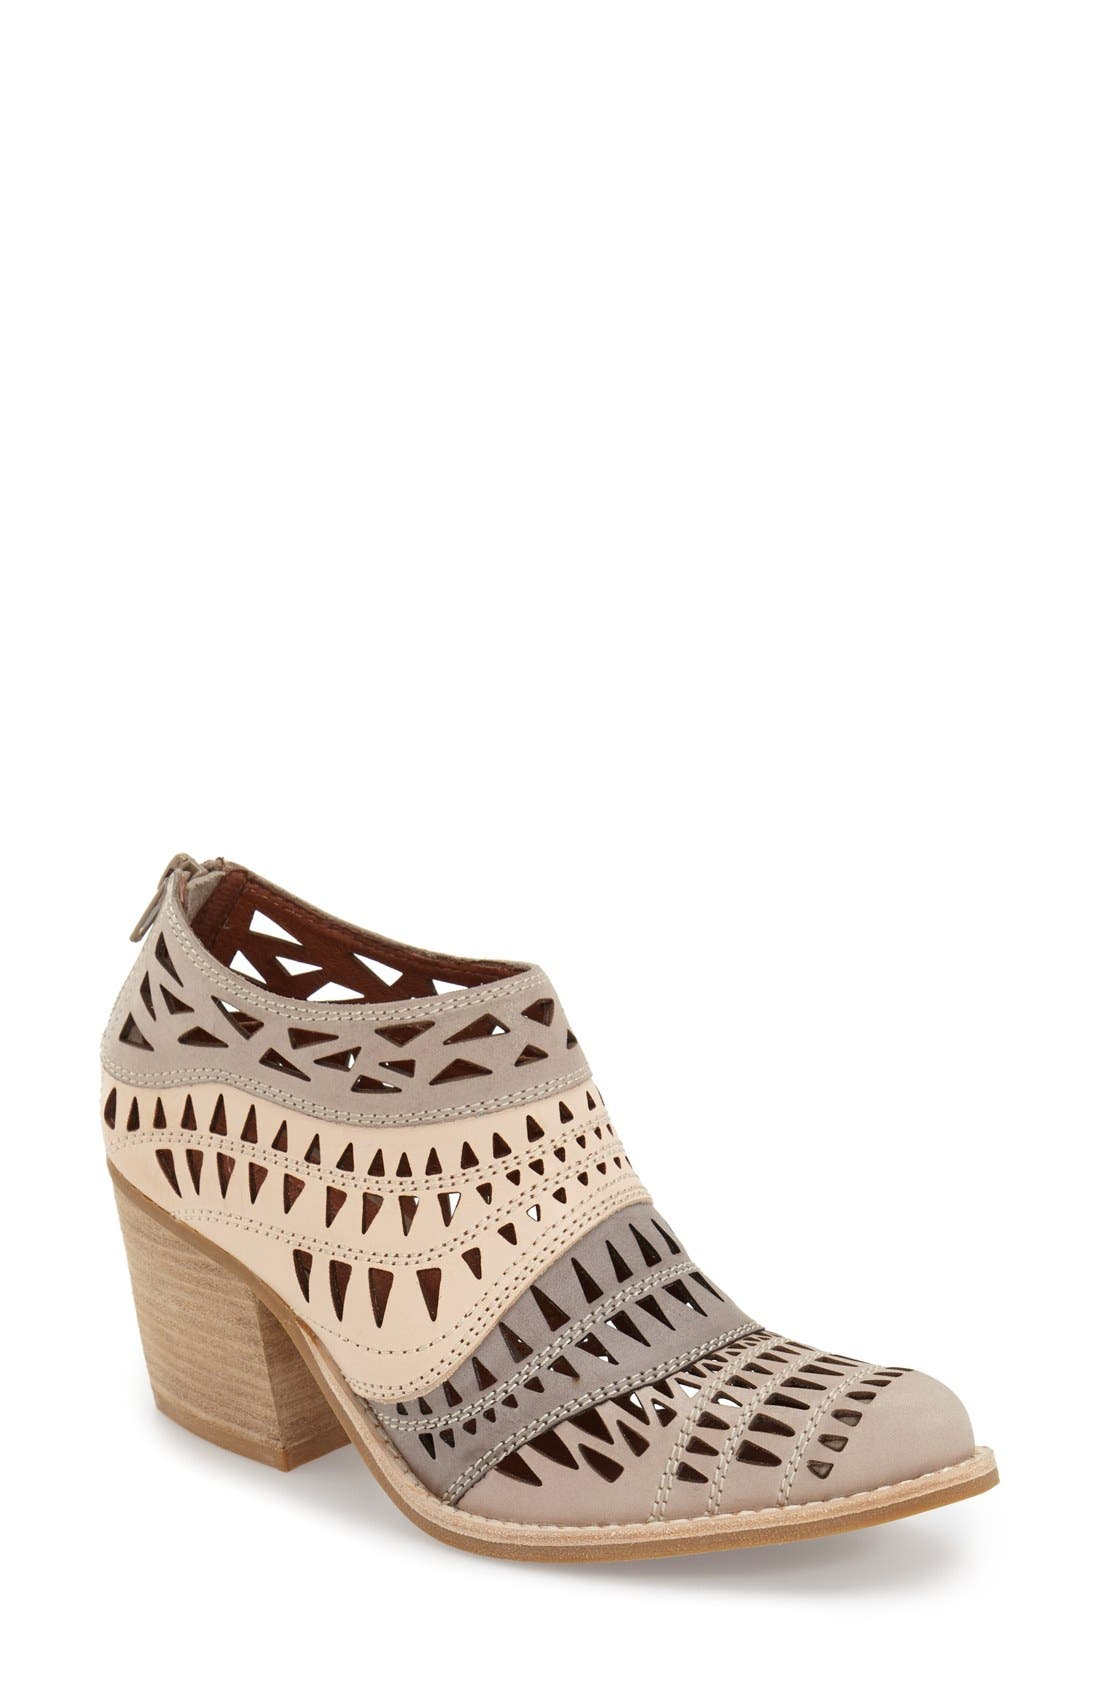 Alternate Image 1 Selected - Jeffrey Campbell 'Faviola' Cutout Western Bootie (Women)